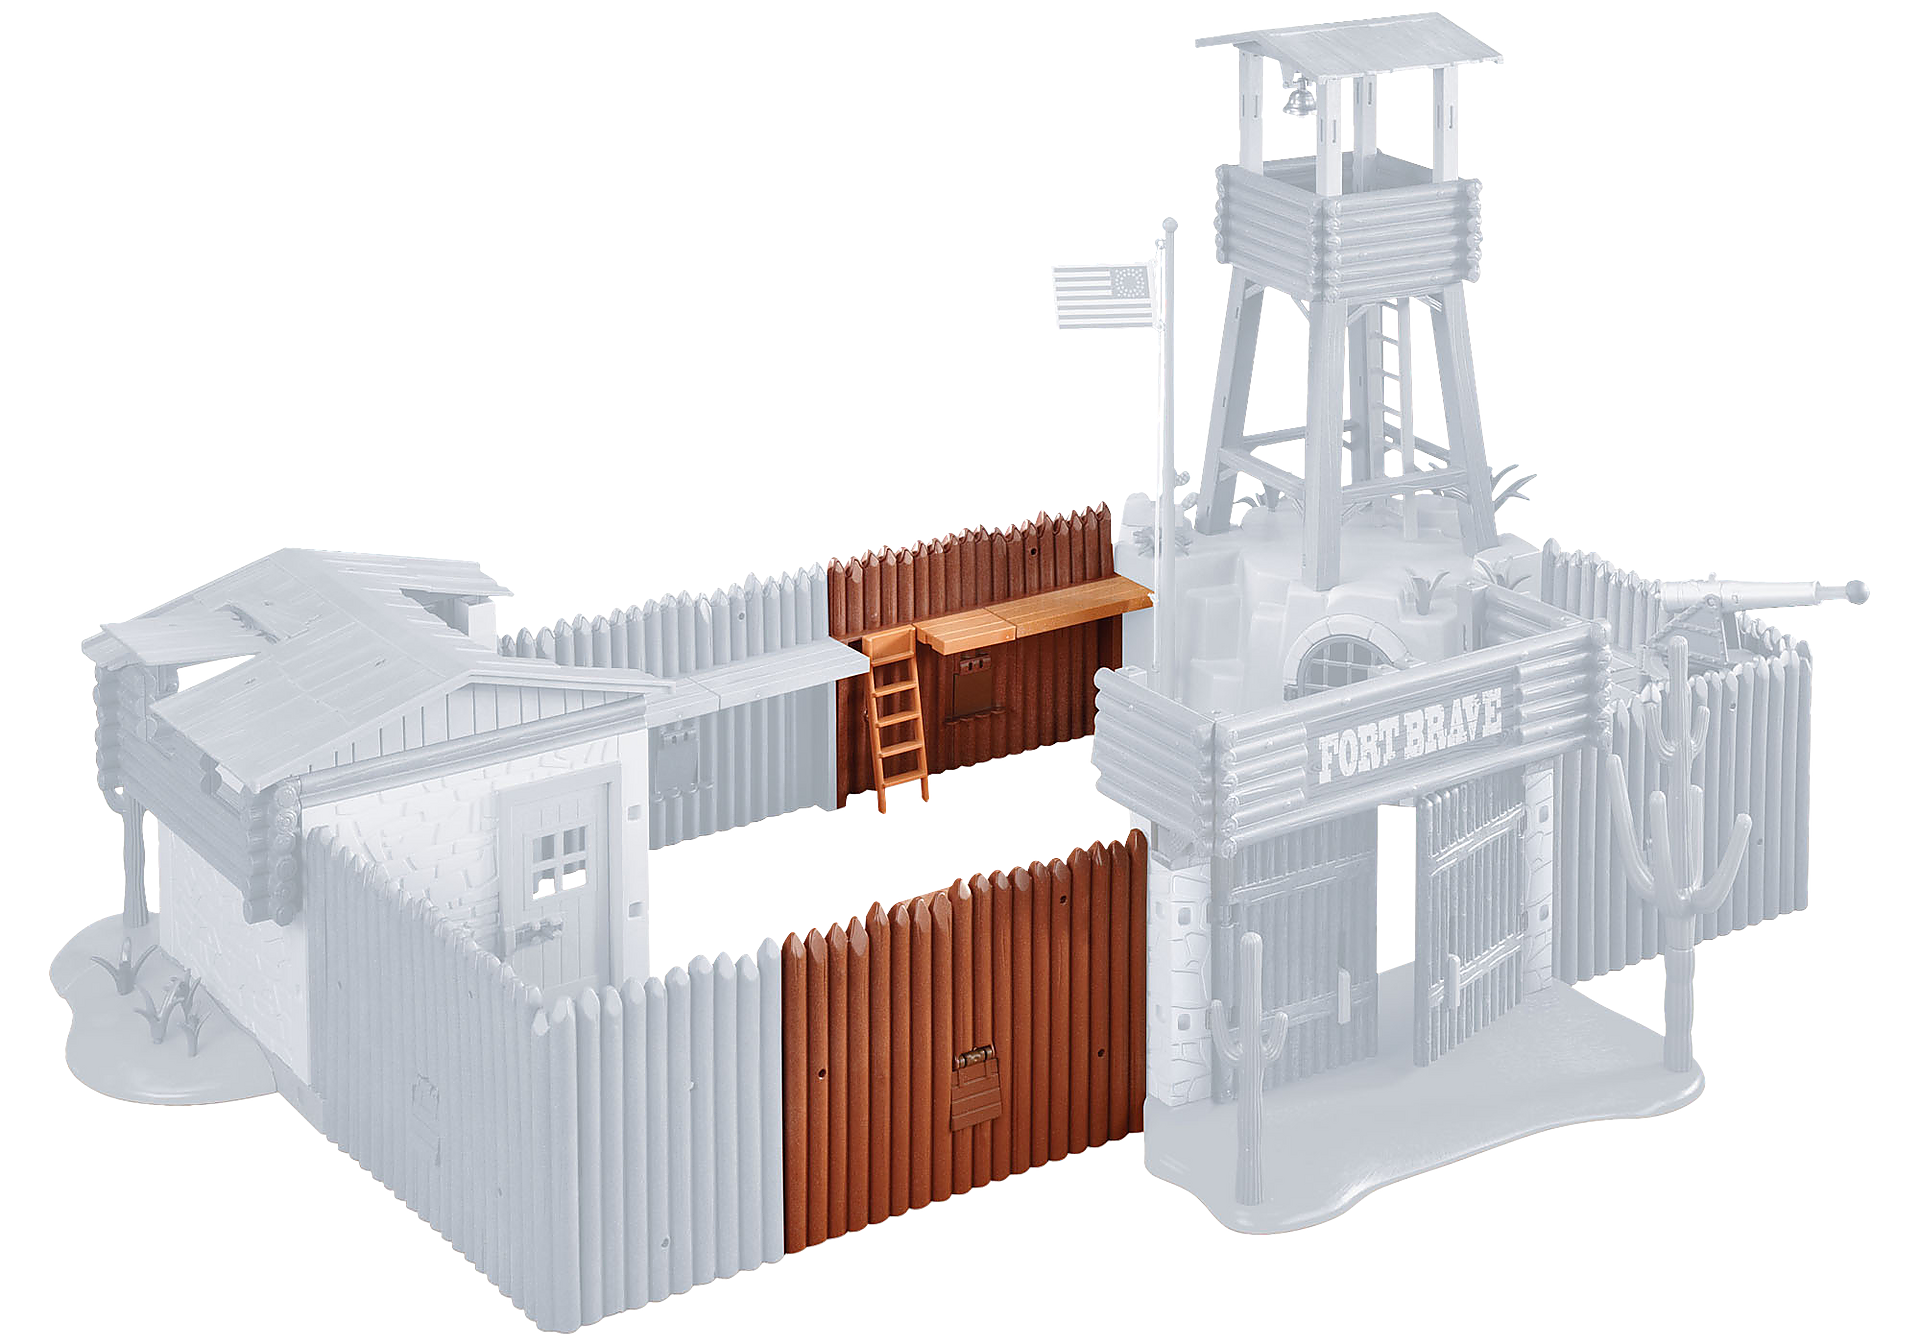 http://media.playmobil.com/i/playmobil/6270_product_detail/Erweiterung großes Western-Fort